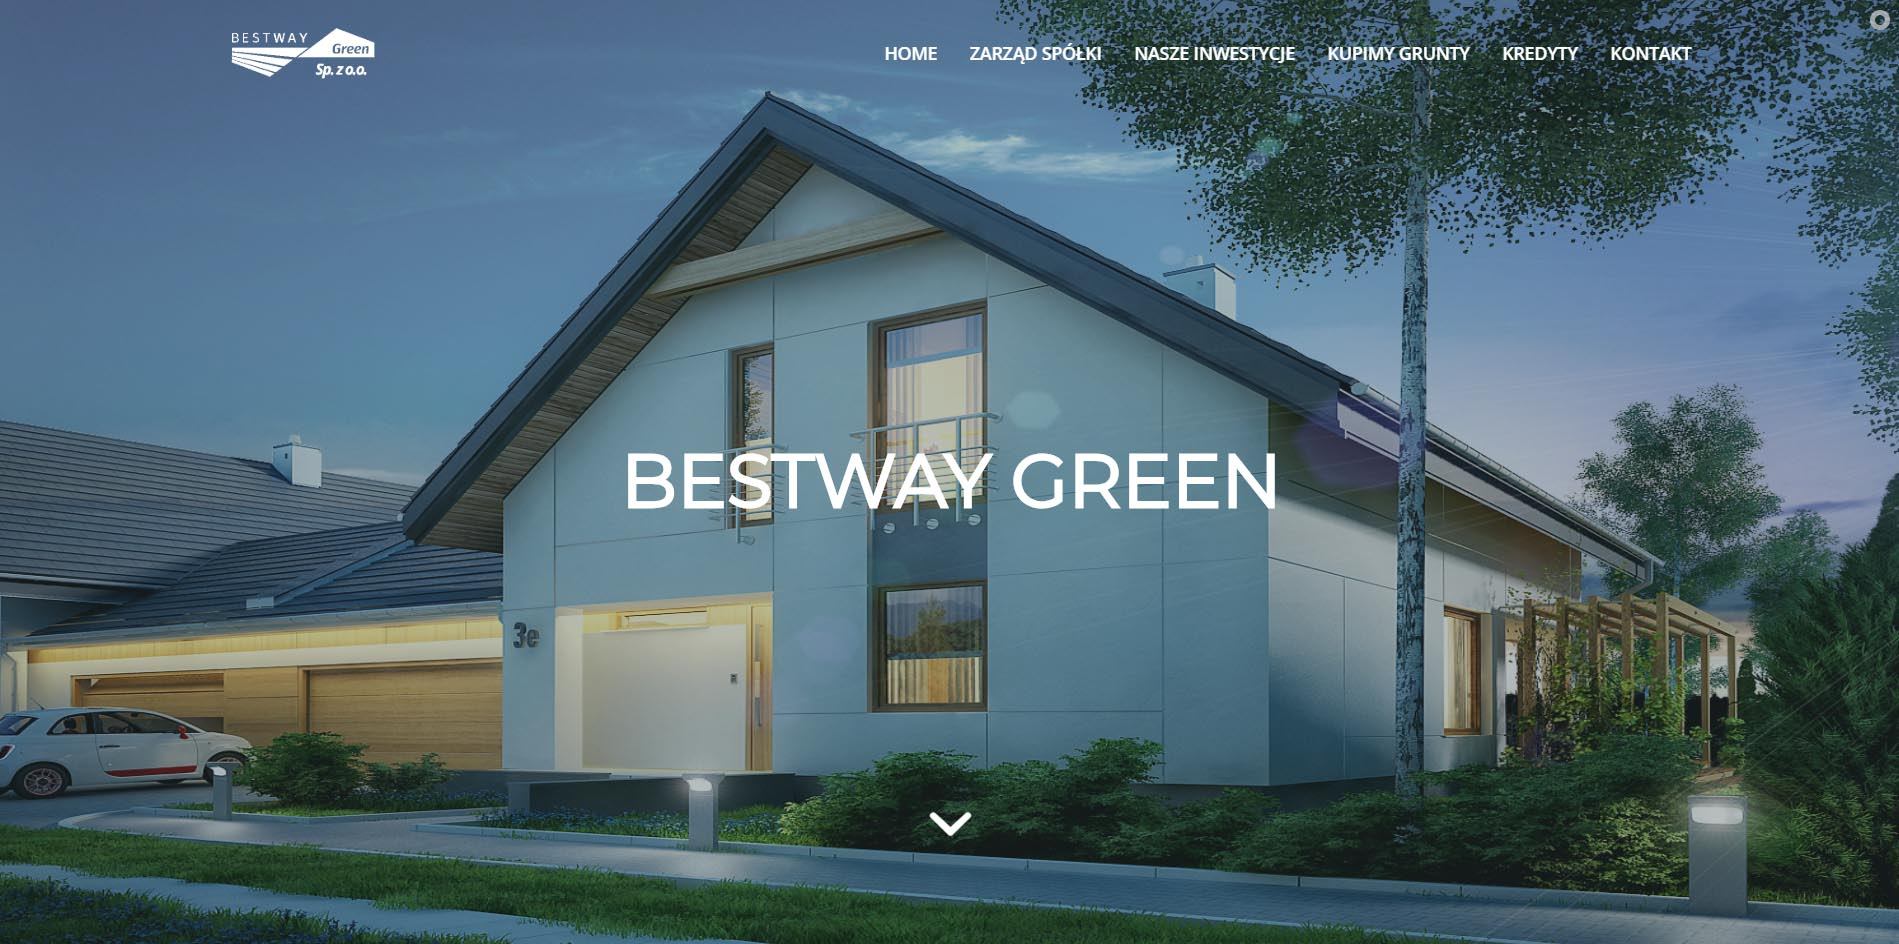 bestwaygreen